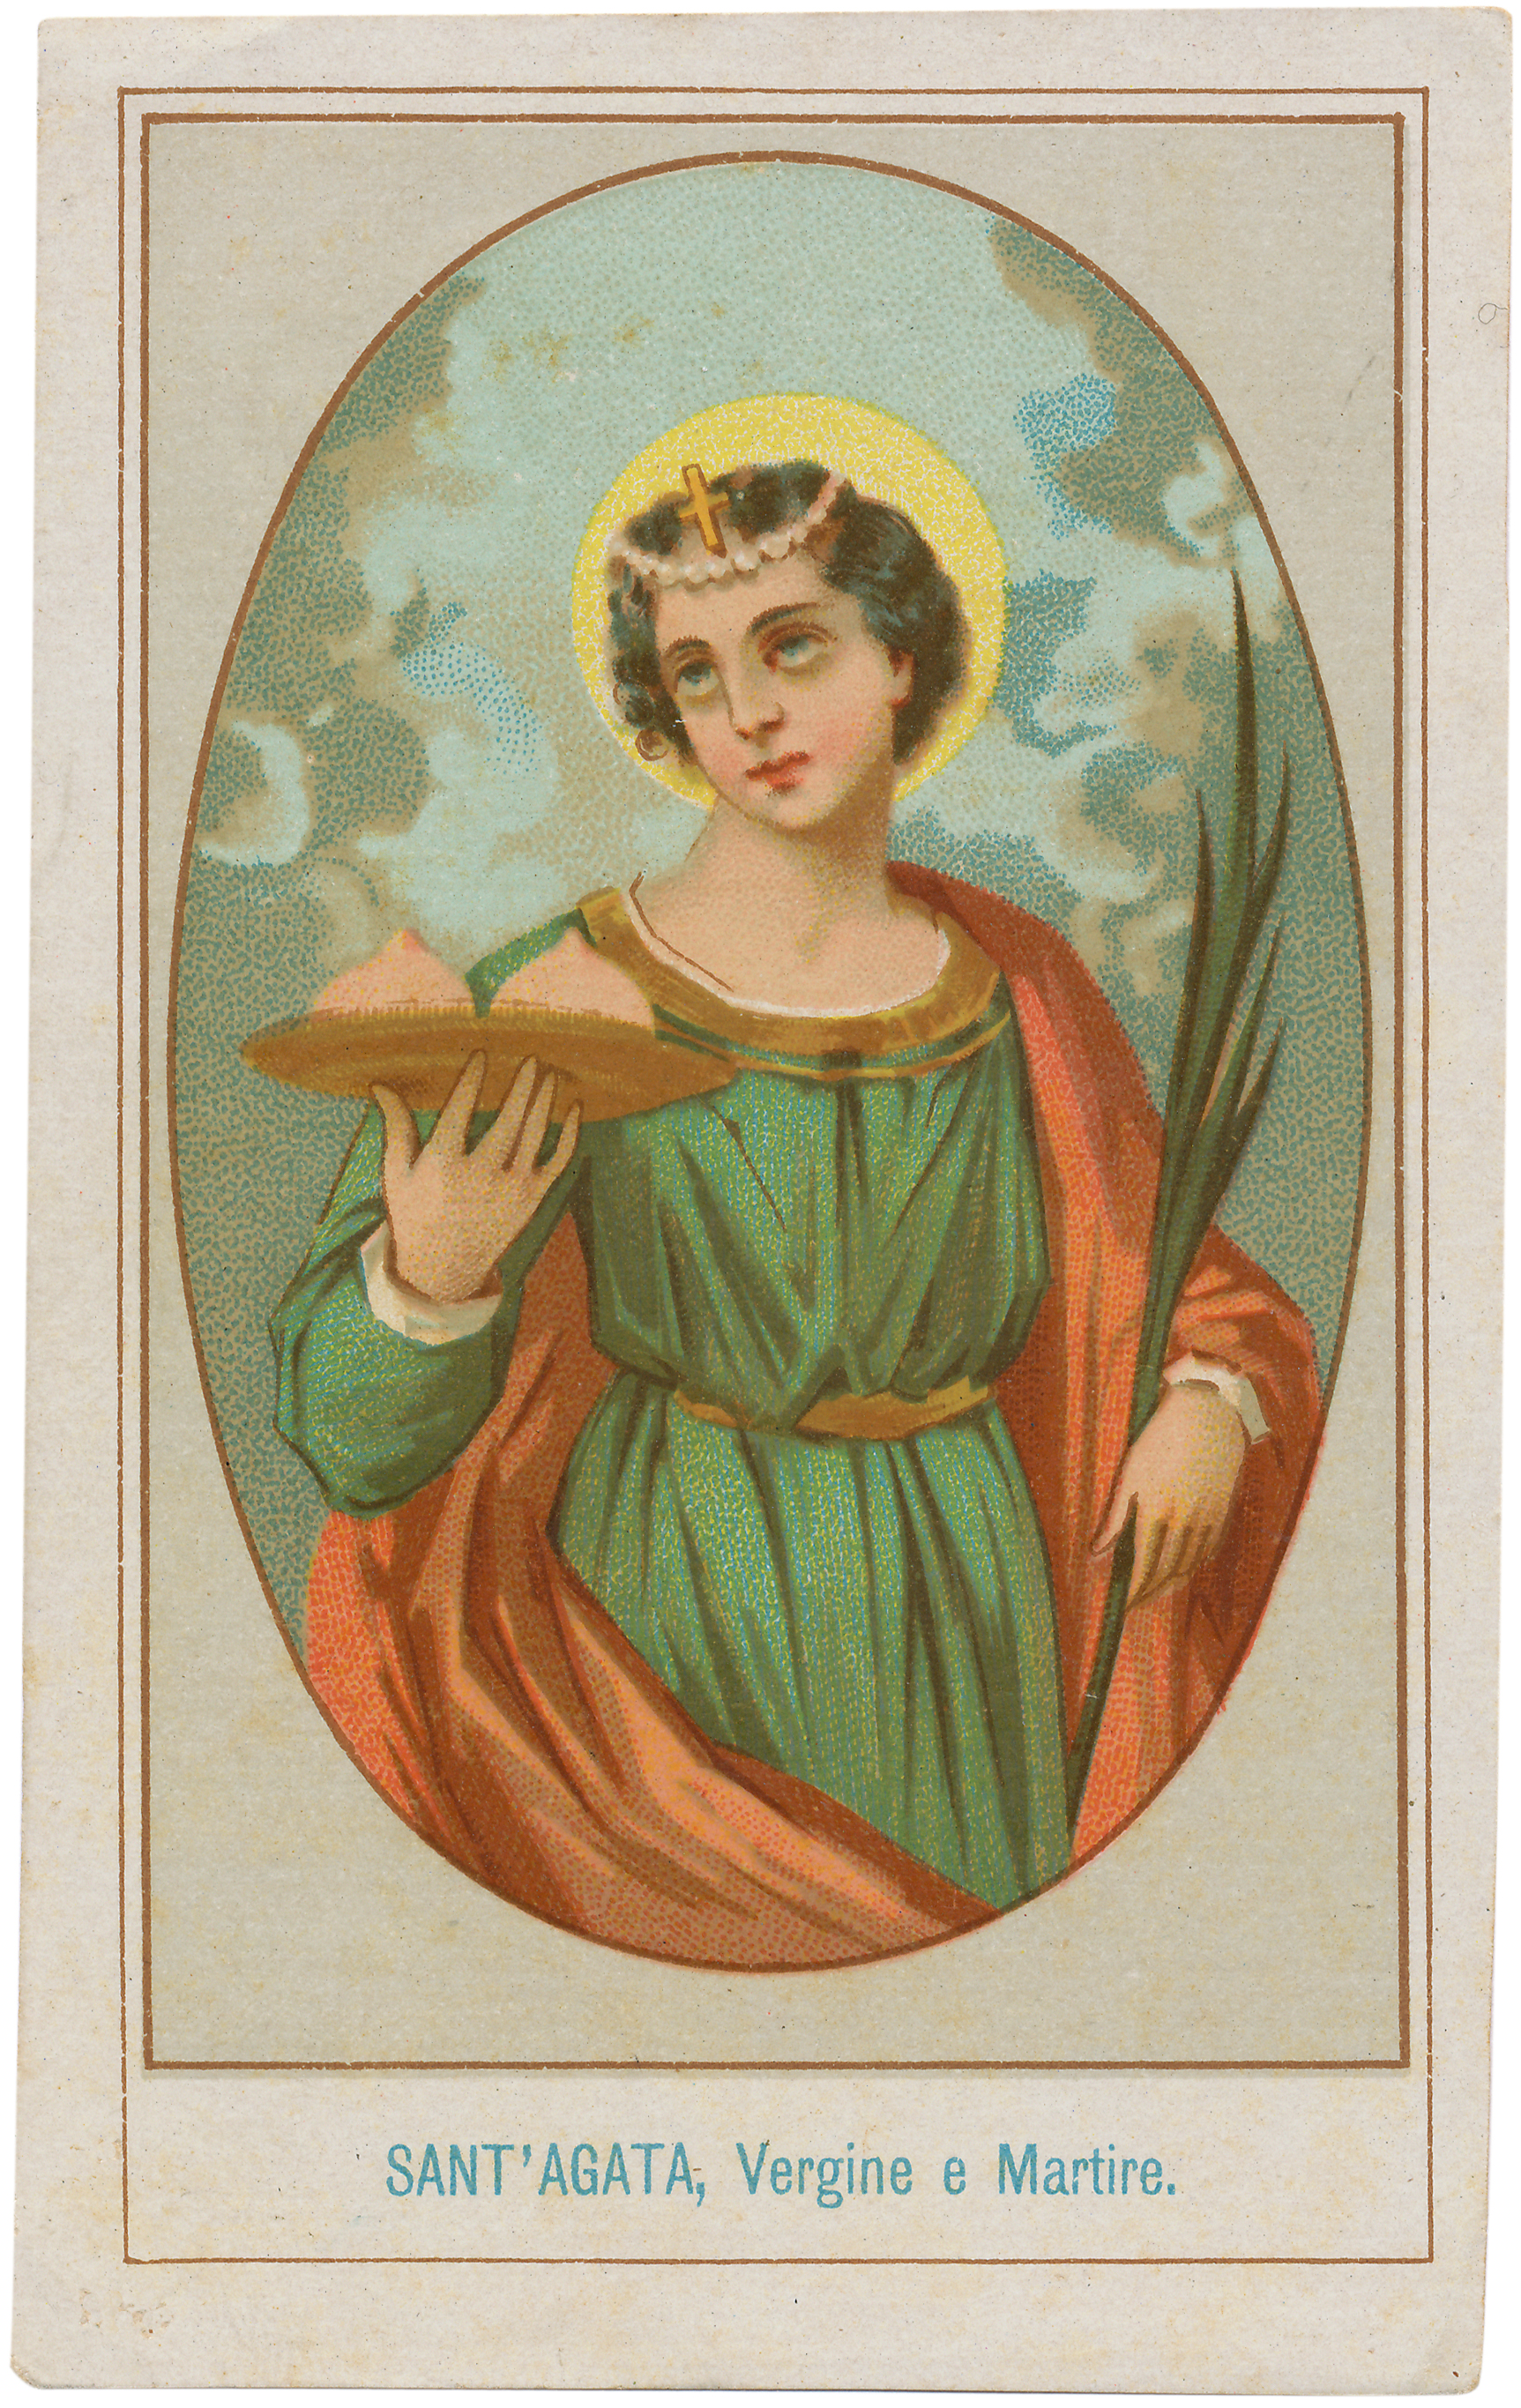 saint agatha single parents St agatha, also known as agatha of sicily, is one of the most highly venerated virgin martyrs of the catholic church it is believed that she was born around 231 in either catania or palermo, sicily .